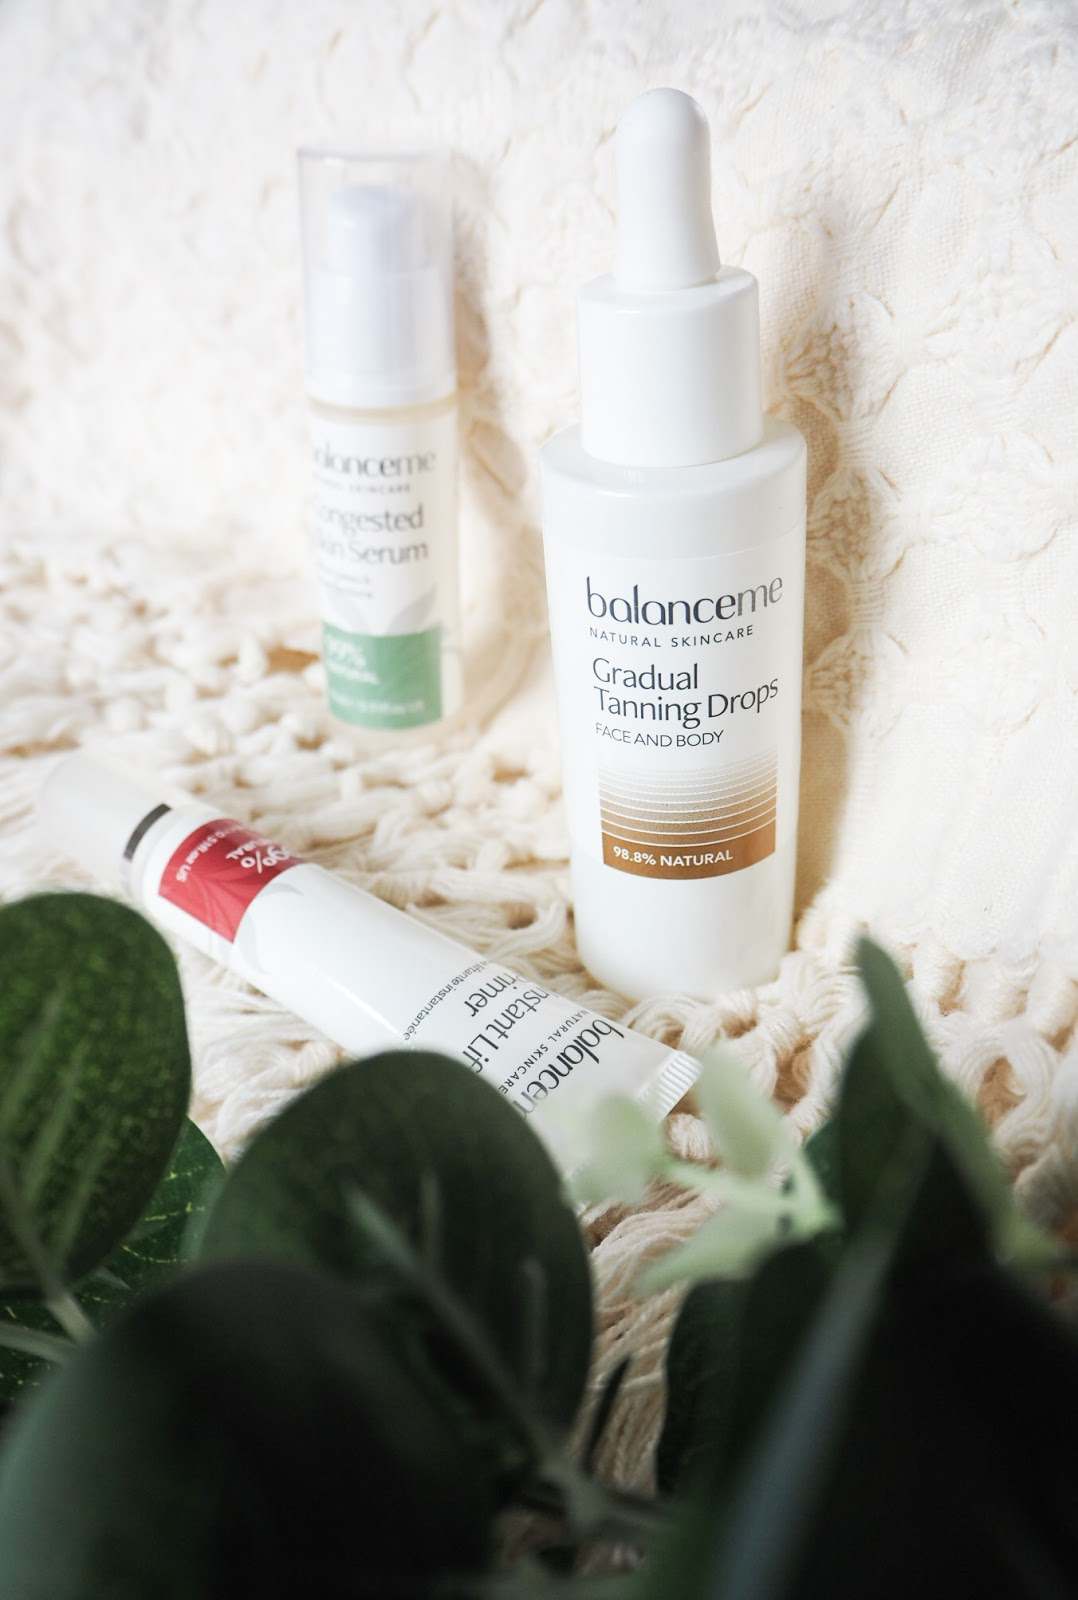 Balance Me Gradual Tanning Drops, Congested Skin Serum and Instant Lift Primer Review